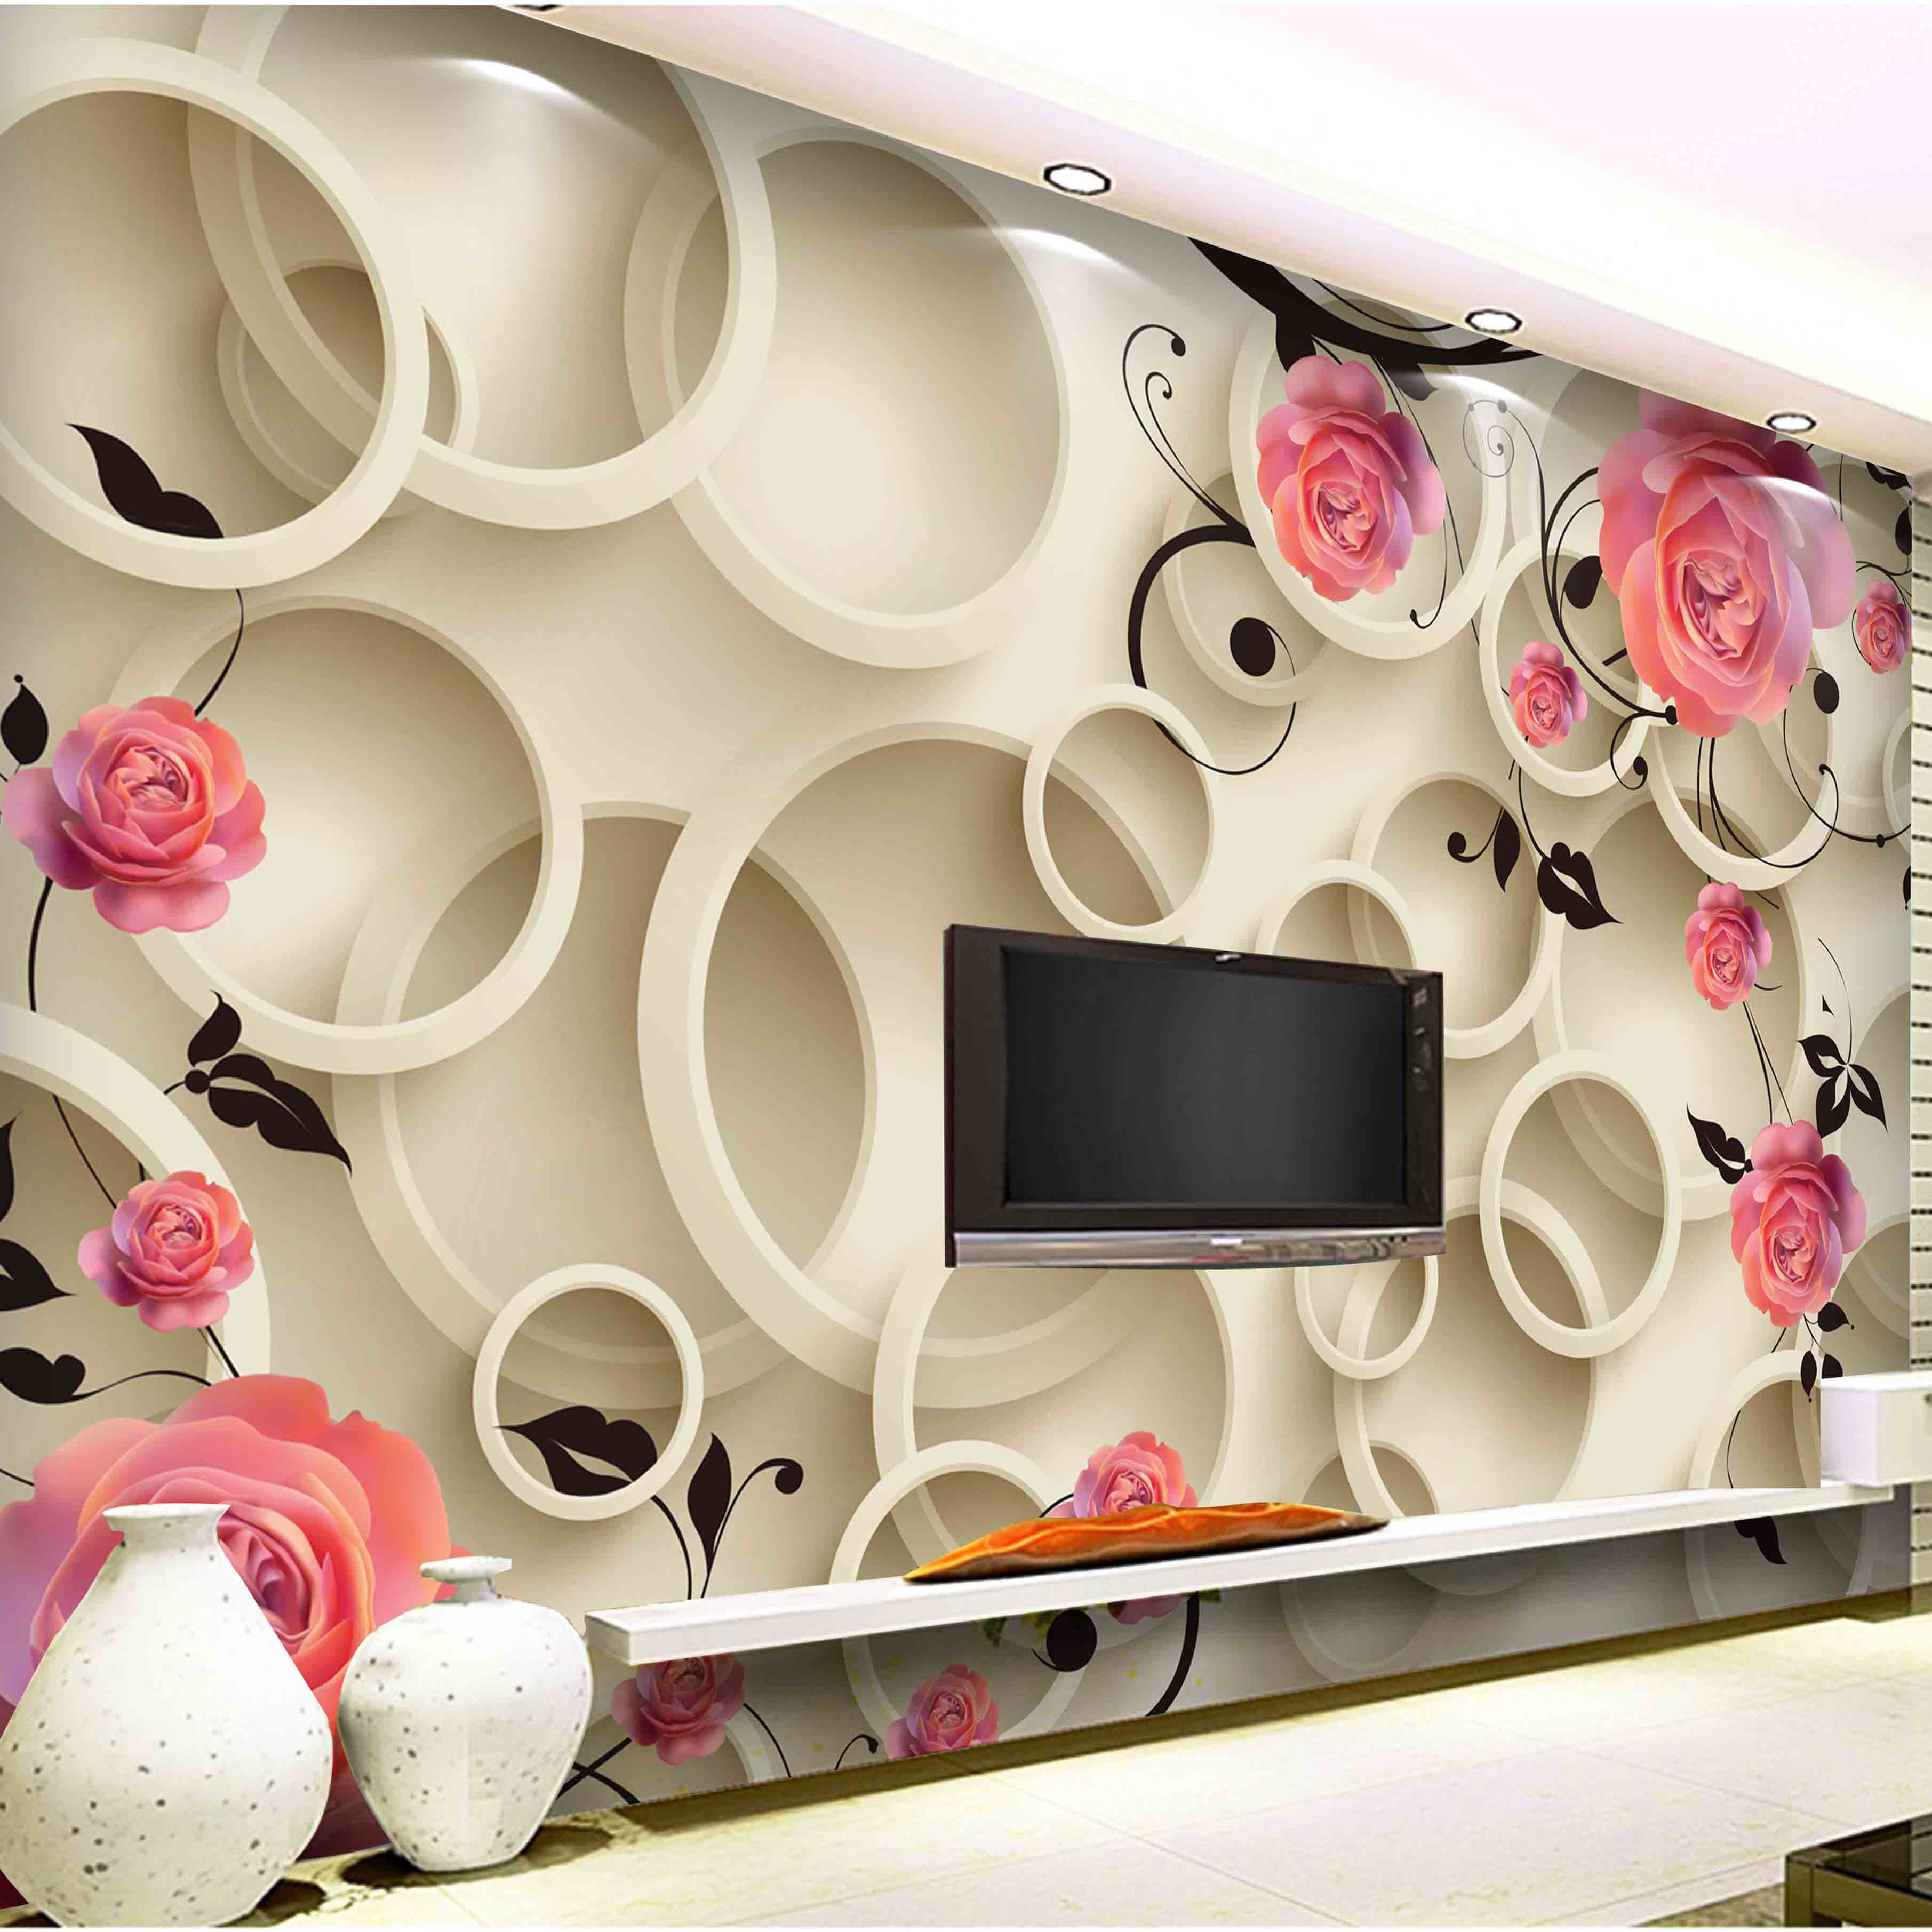 3d Wallpaper Bedroom Mural Roll Modern Luxury Embossed Flower Wall - Individuality brief tv background 3d wallpaper for wall 3d hd rose wallpaper for living room wall